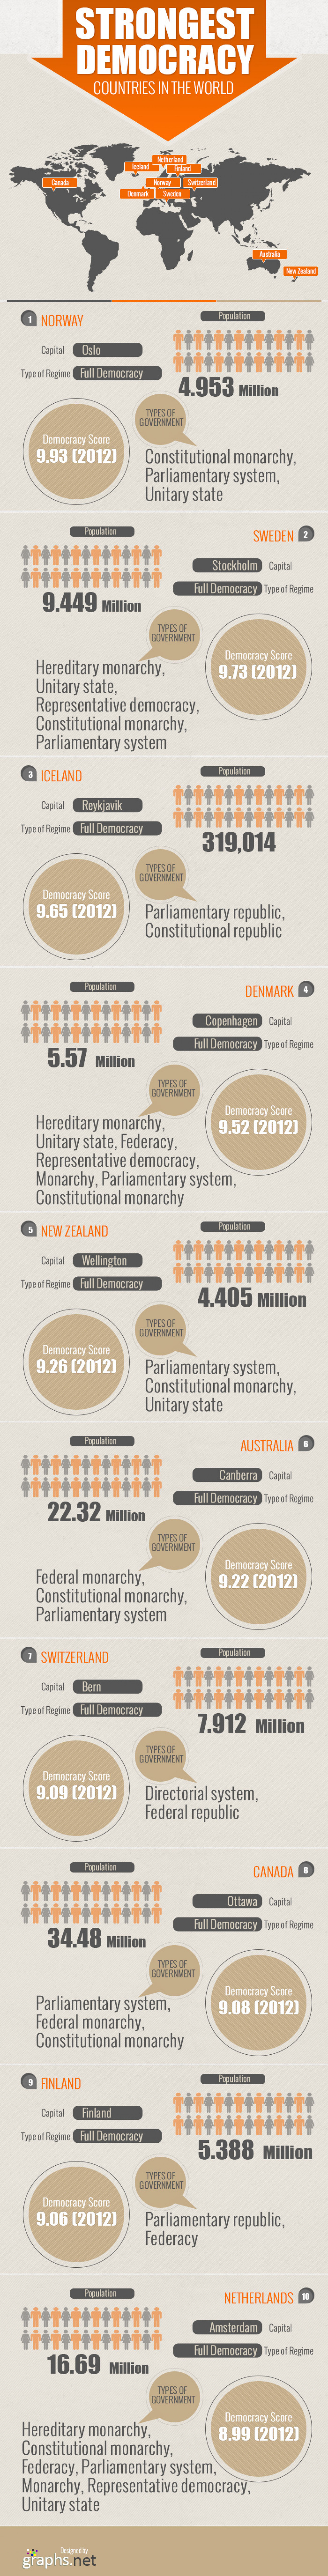 World's strongest democracy countries Infographic